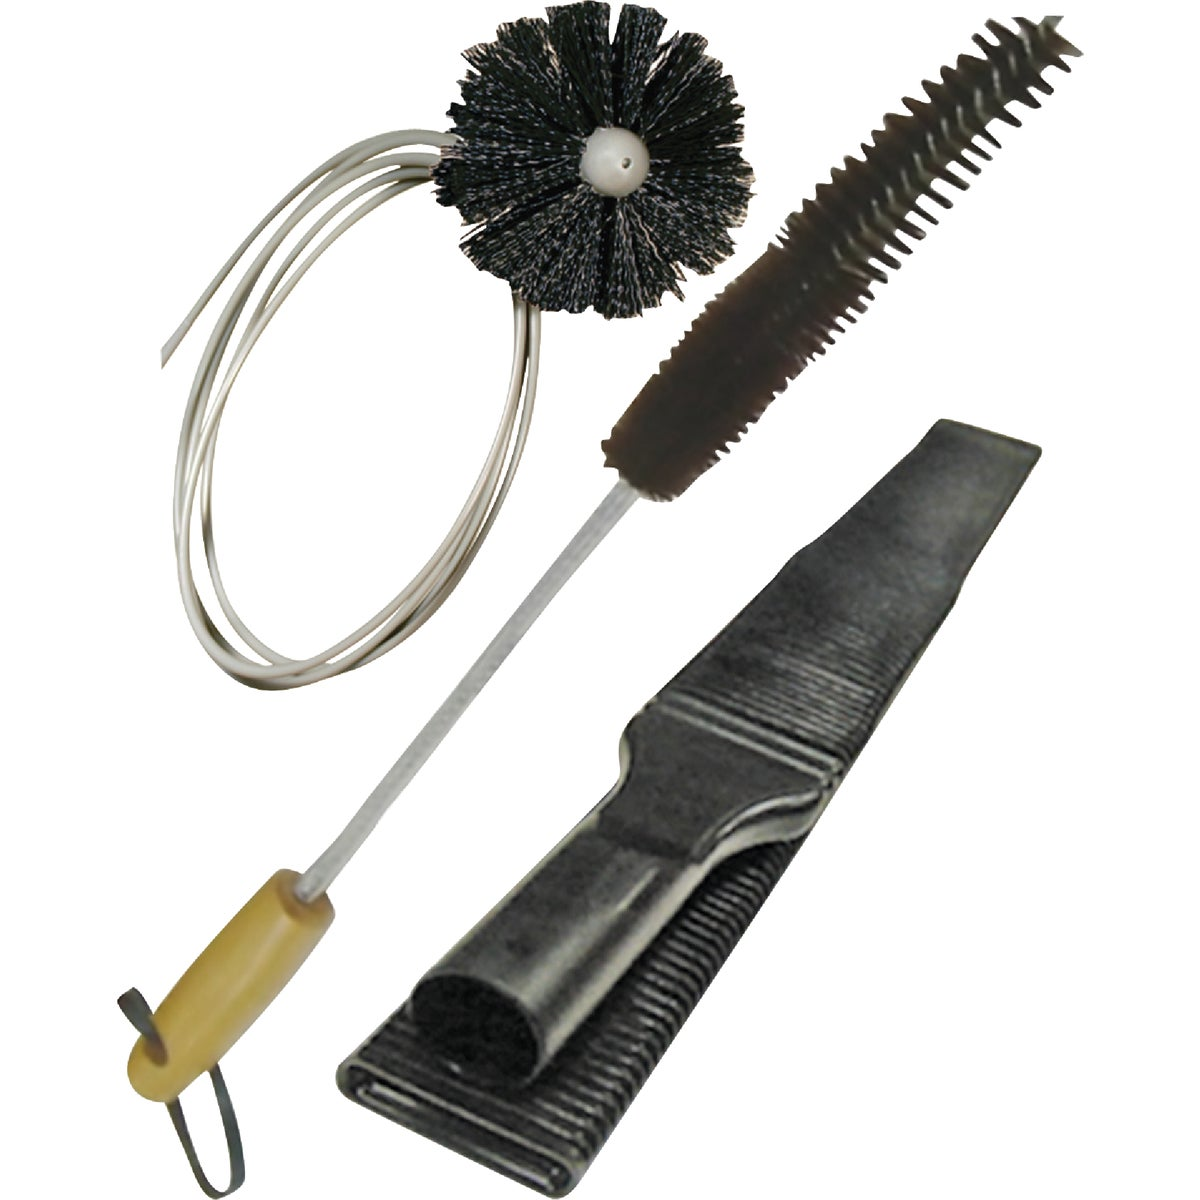 3PC DRYER DUCT CLEAN KIT